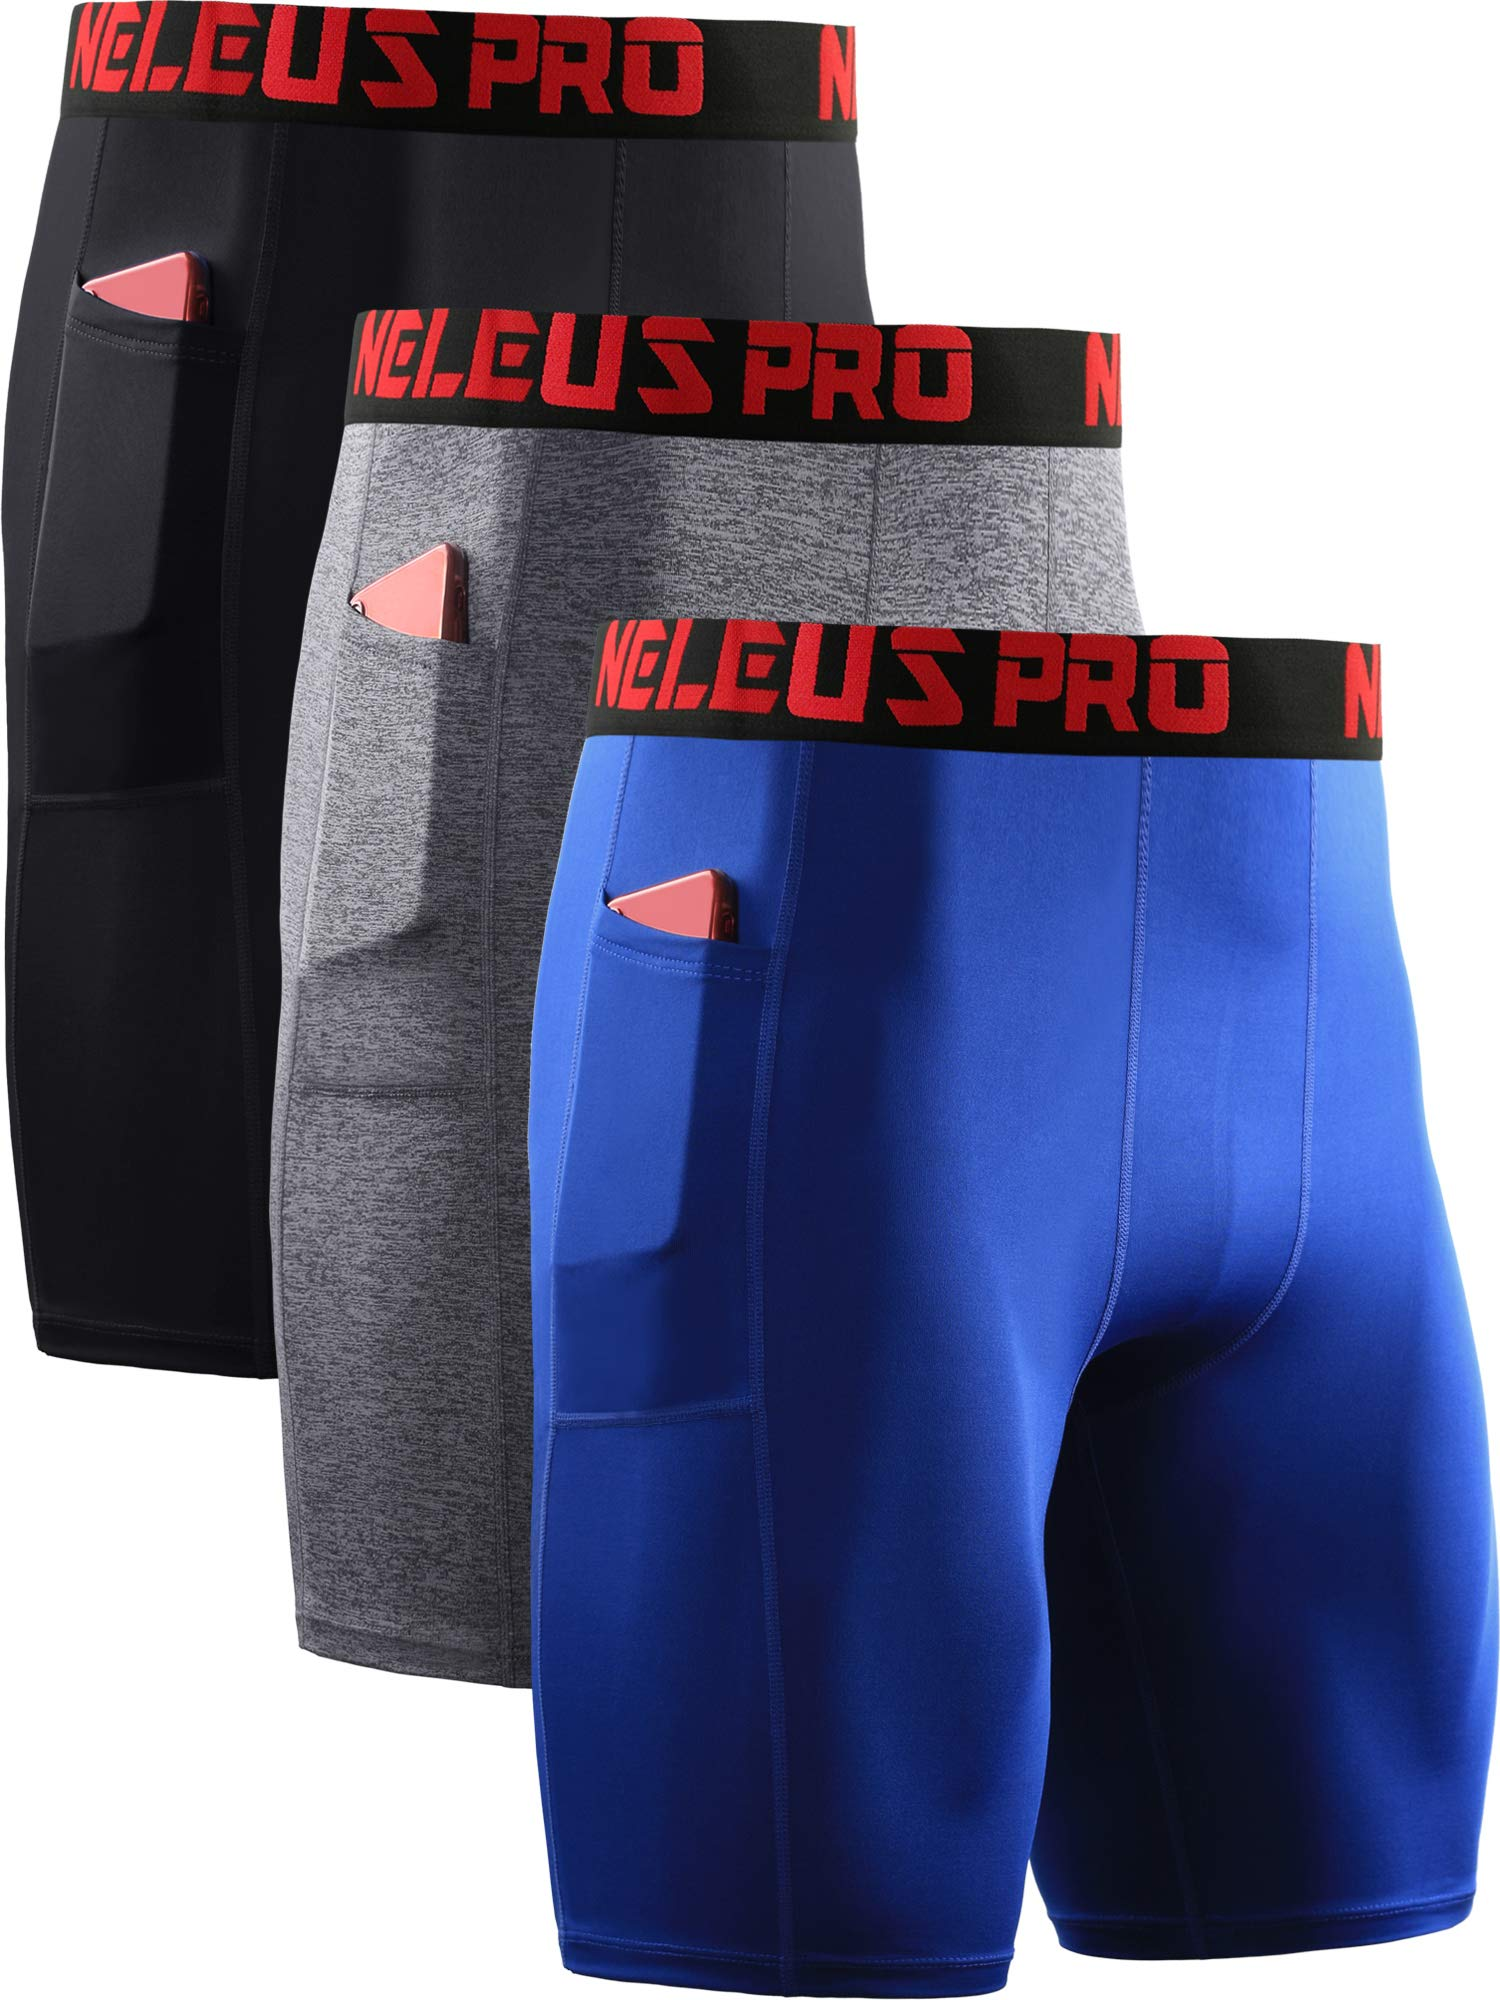 Neleus Men's Compression Shorts with Pockets 3 Pack,6064,Black/Grey/Blue,US L,EU XL by Neleus